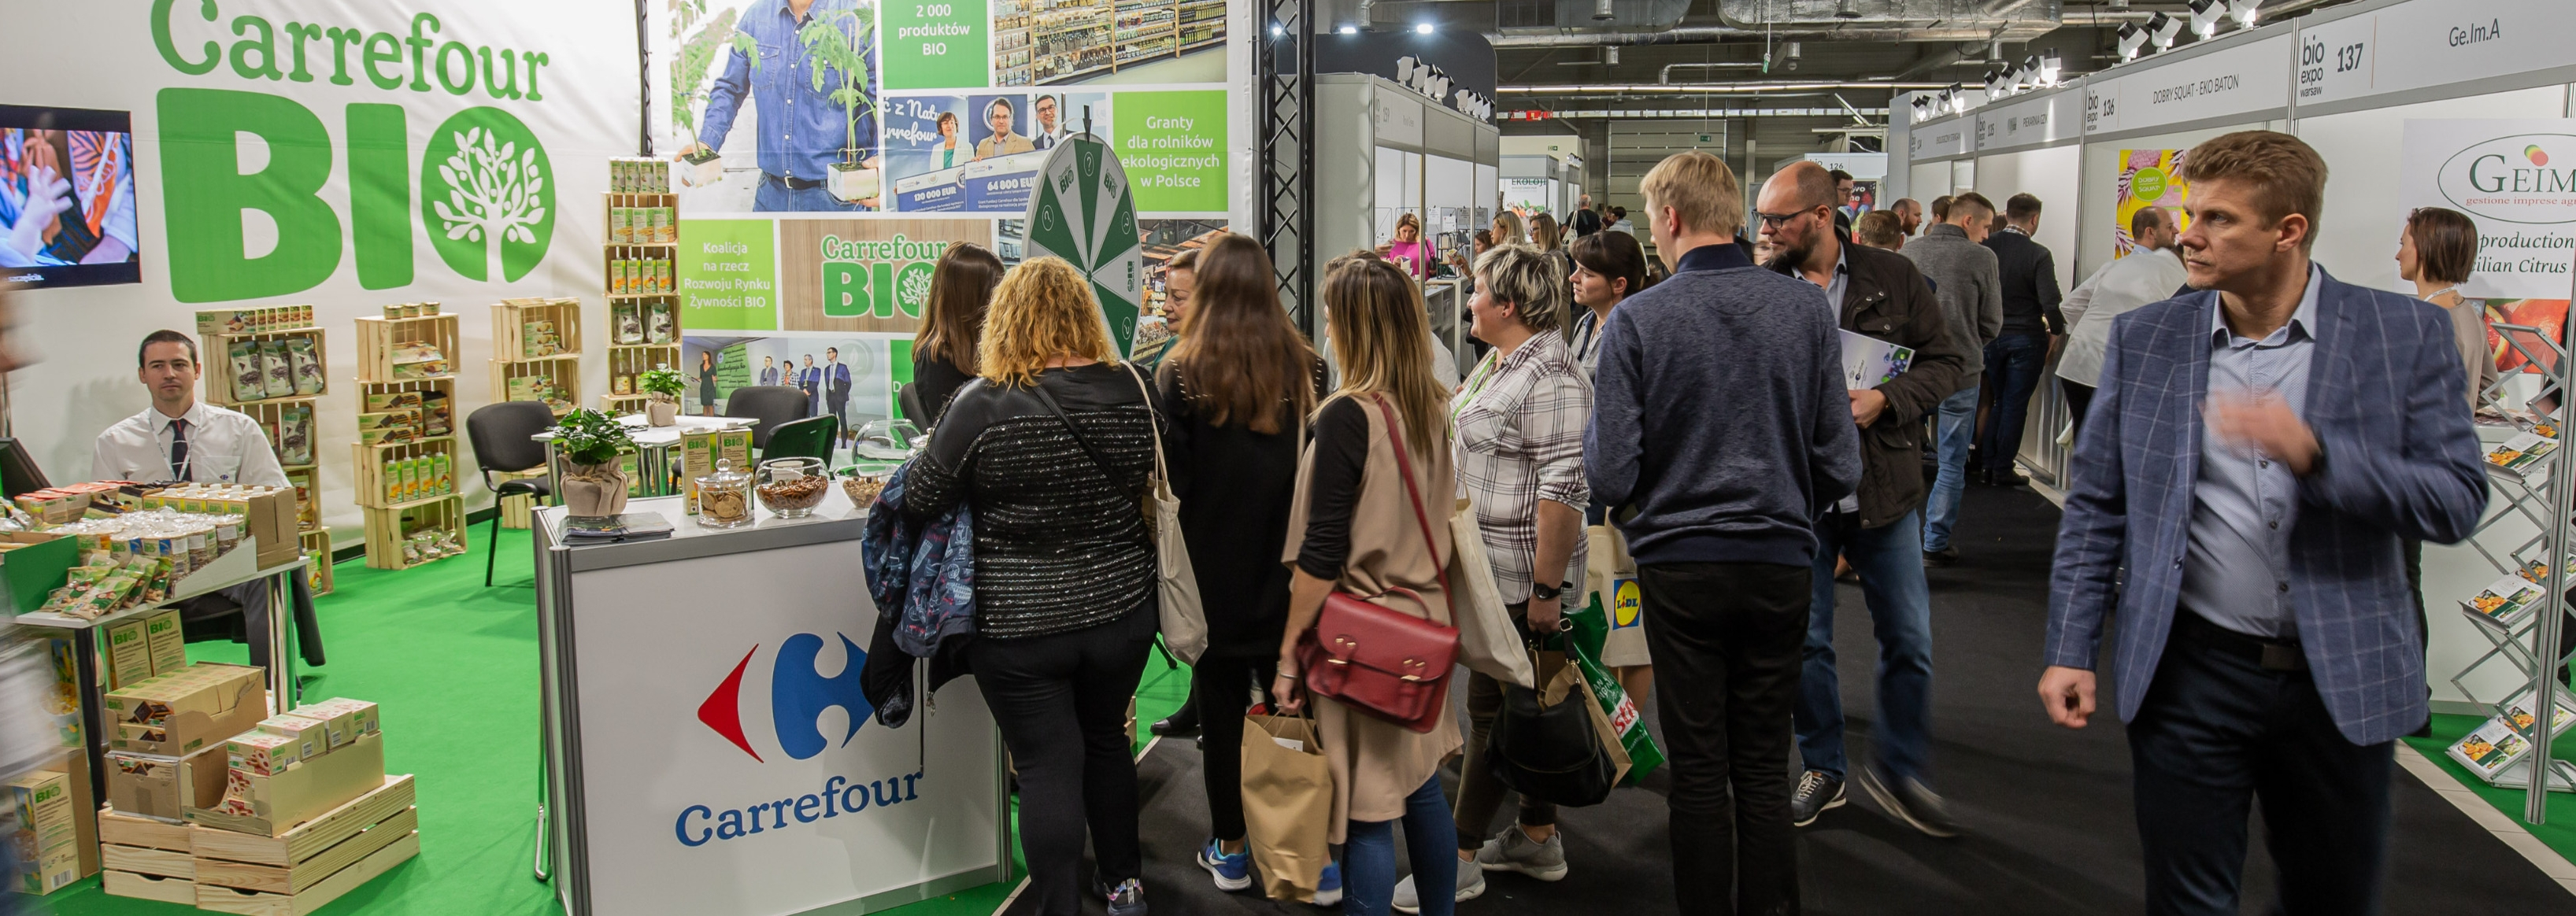 CARREFOUR PRESENTS THE OFFER OF OWN BRAND BIO PRODUCTS AT BIOEXPO